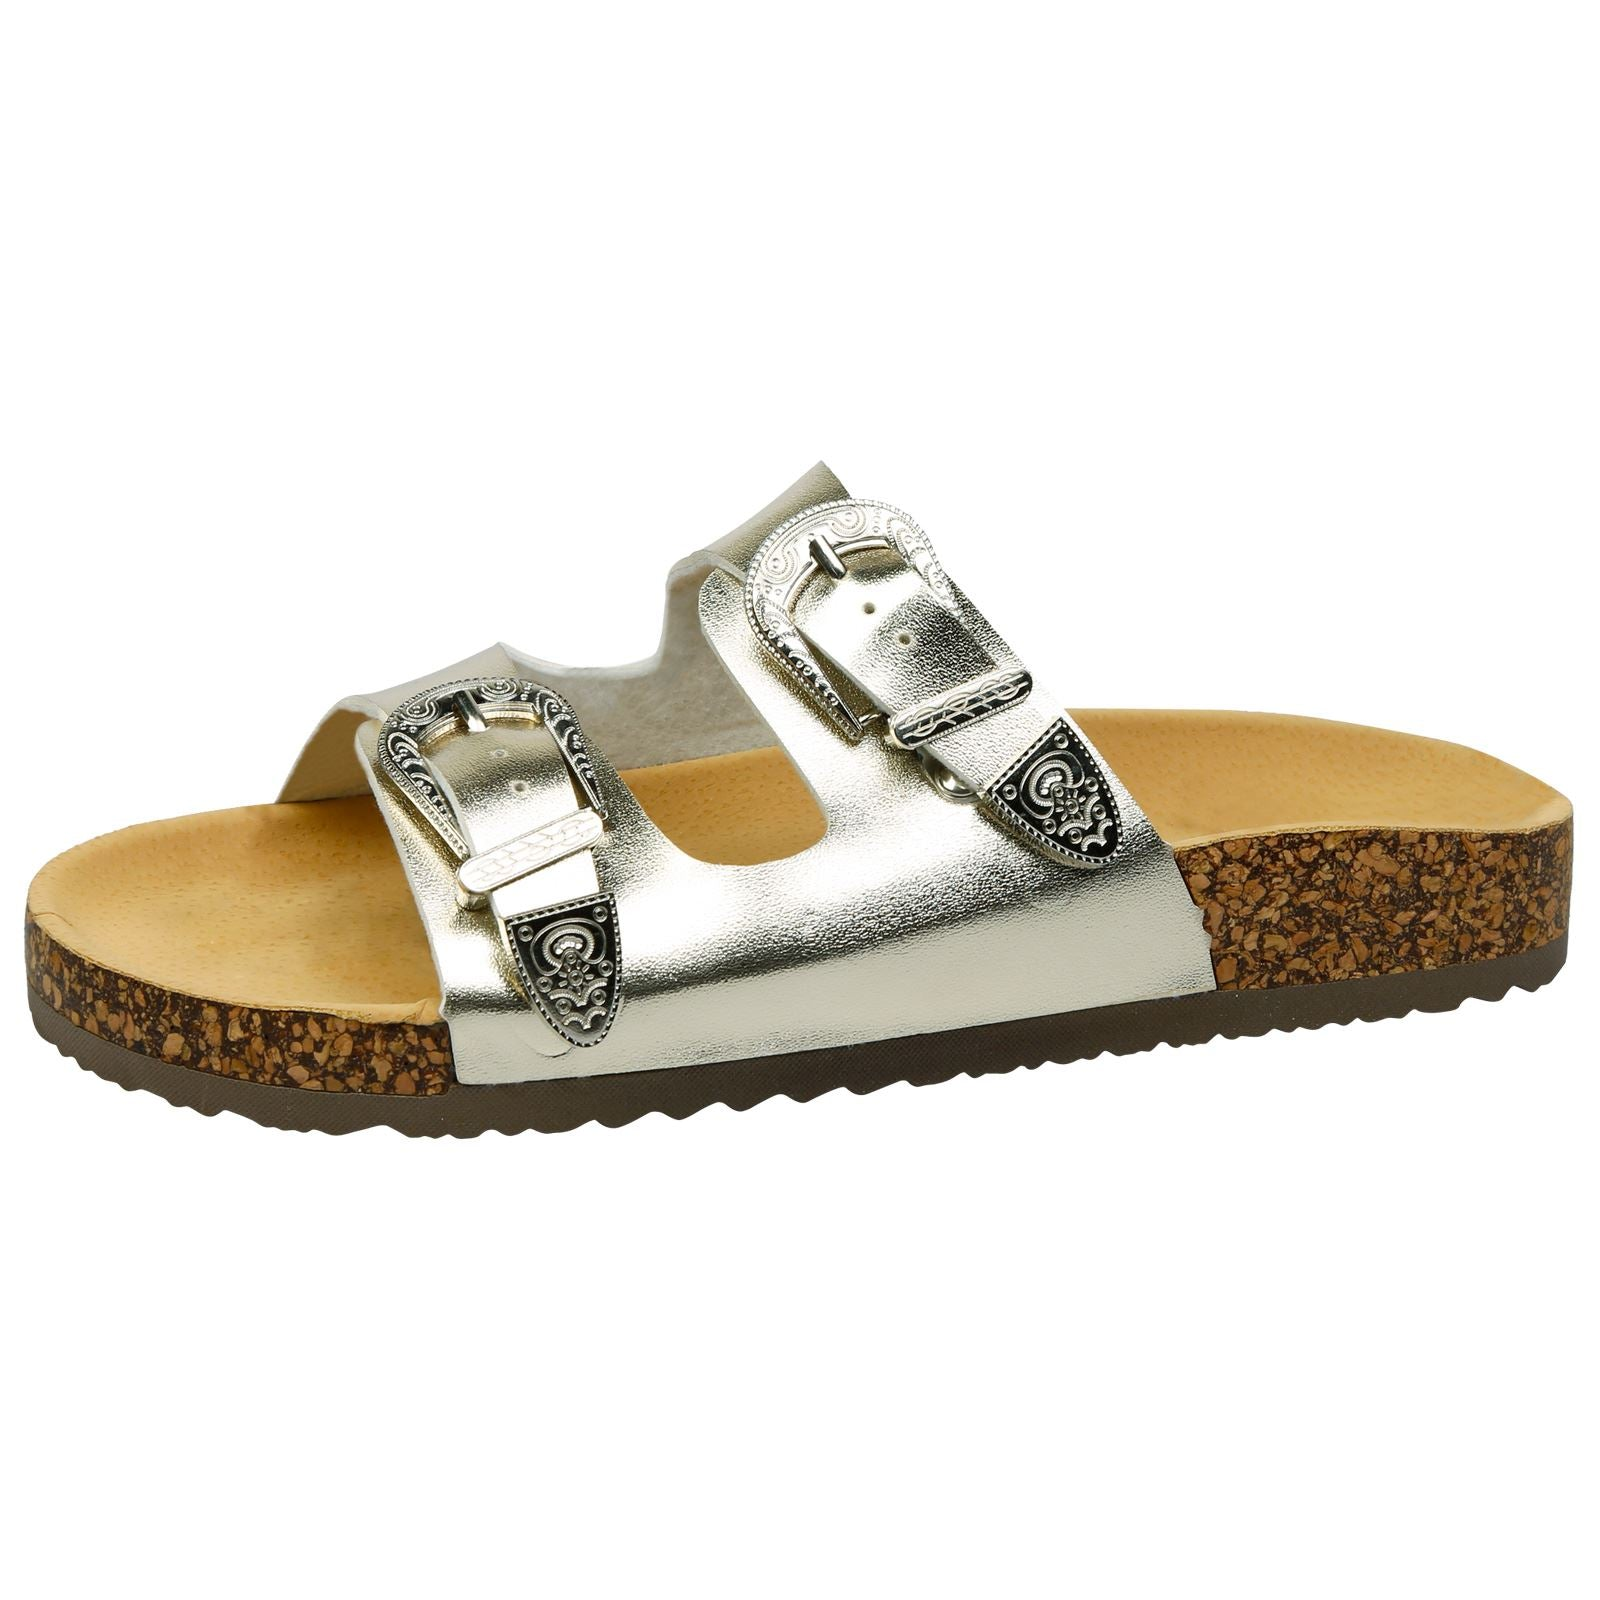 Meredith Buckled Sliders in Gold Faux Leather